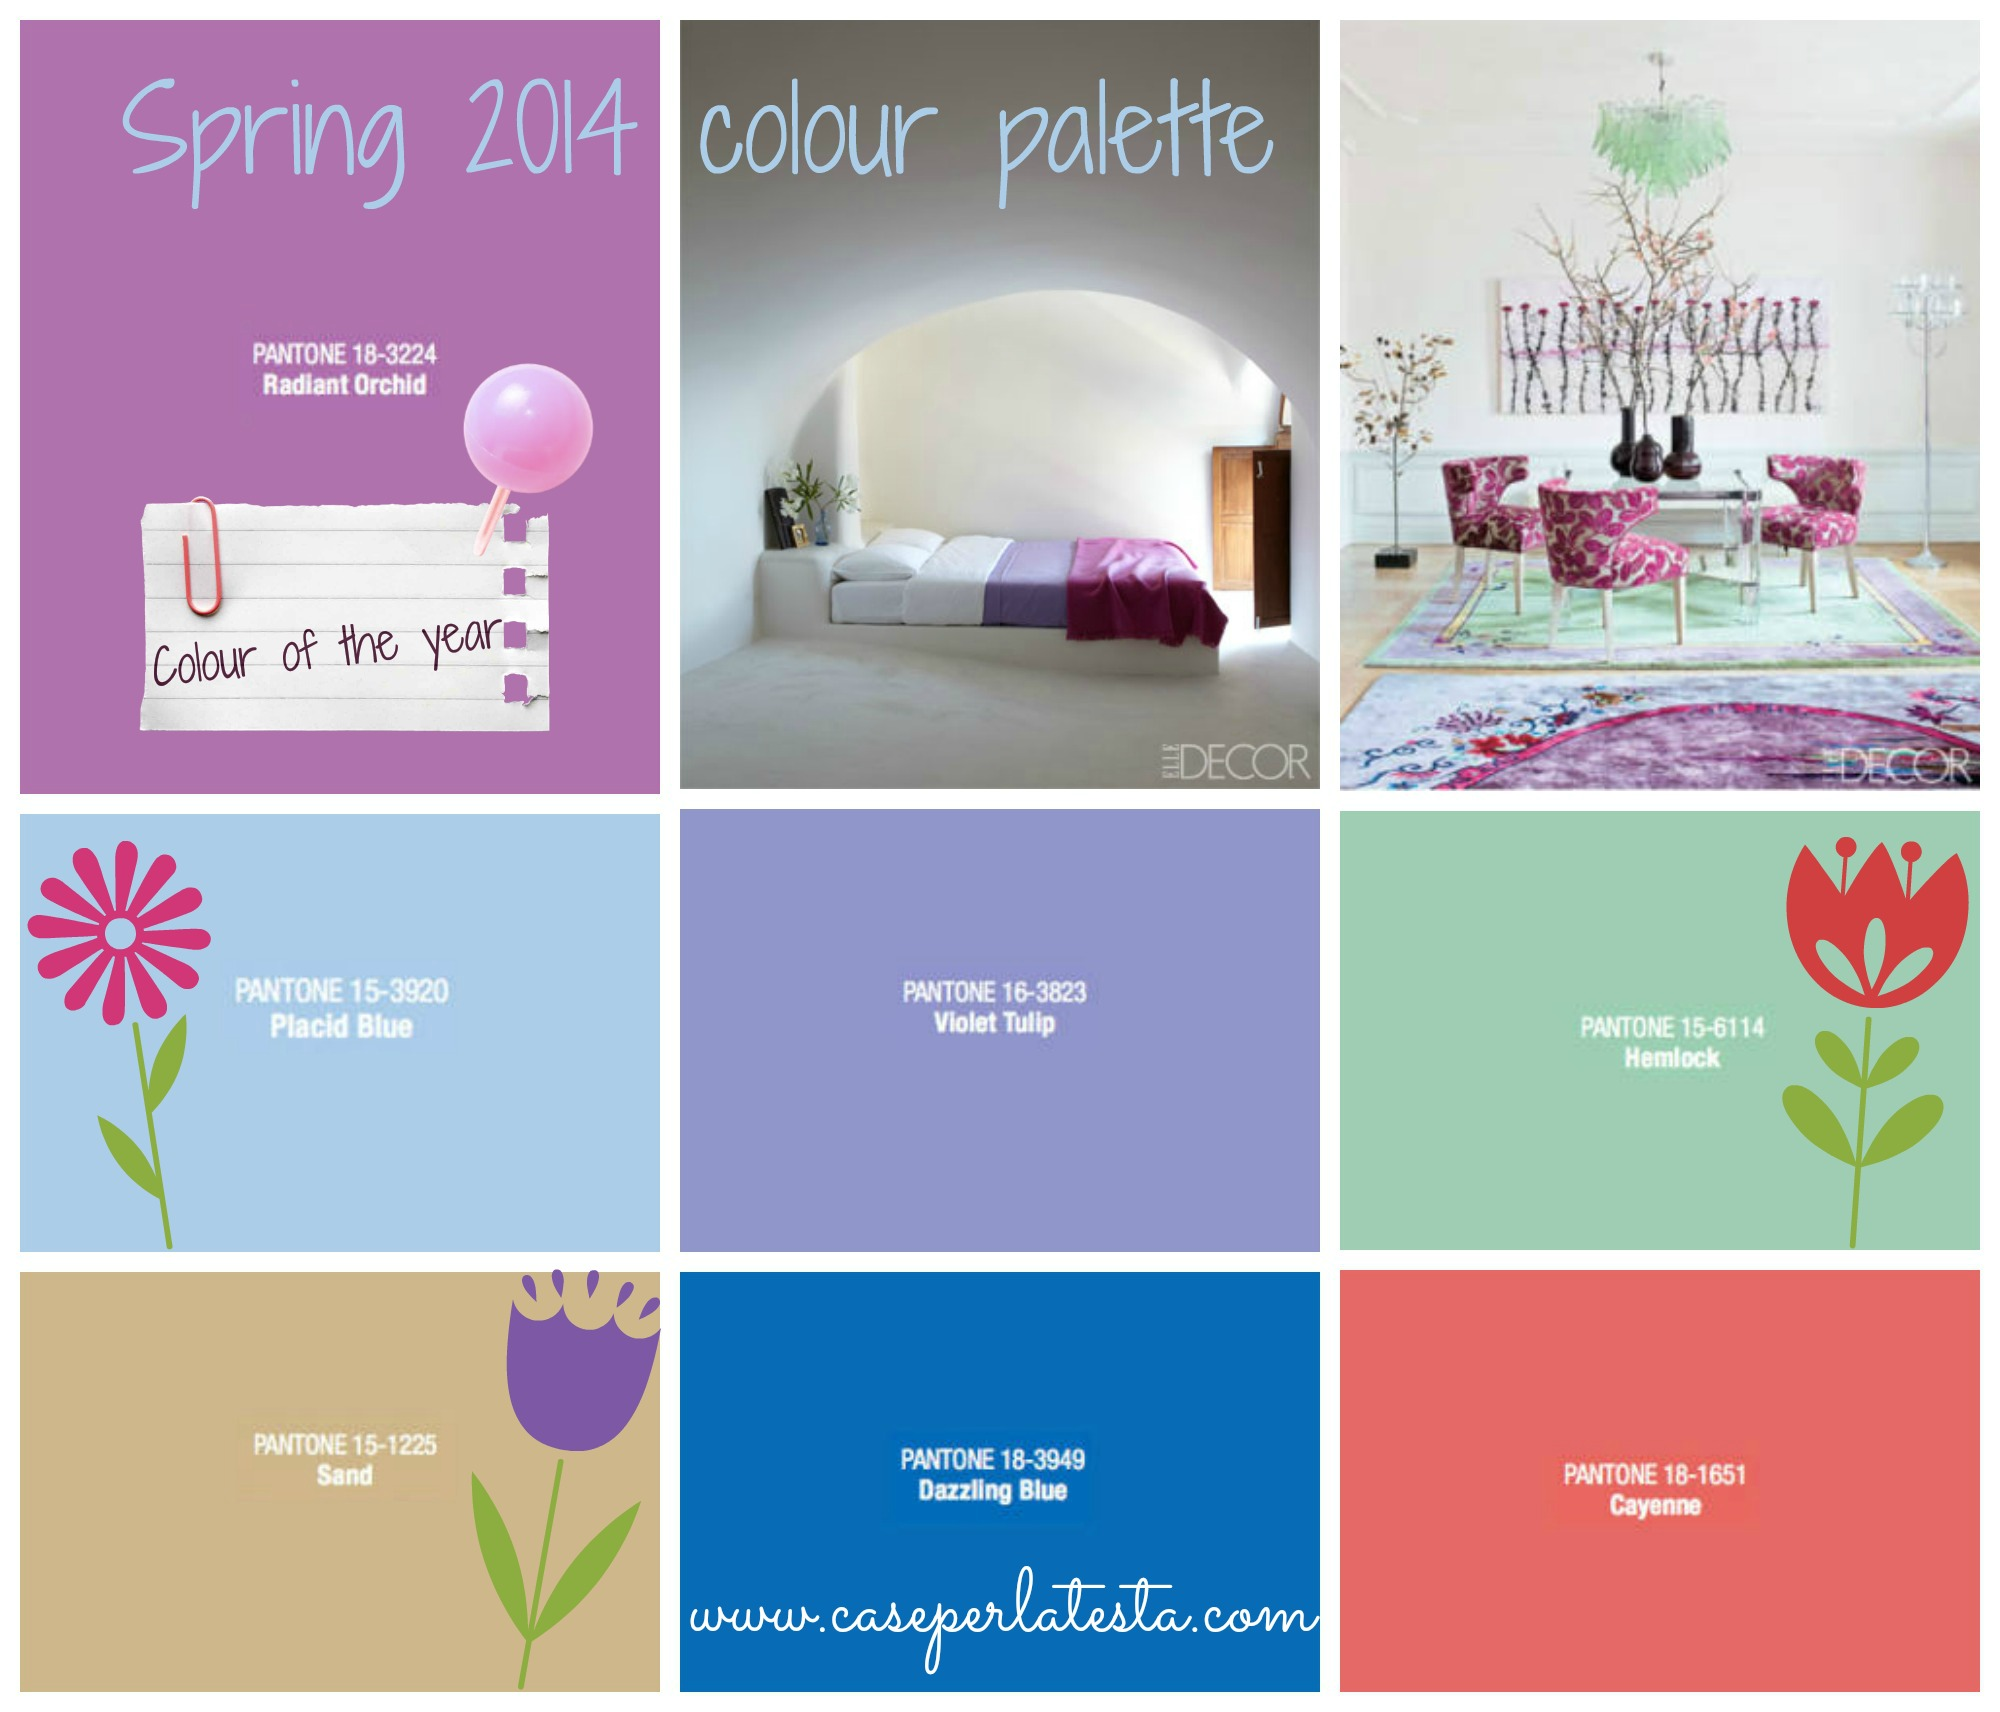 spring_colours_2014_collage